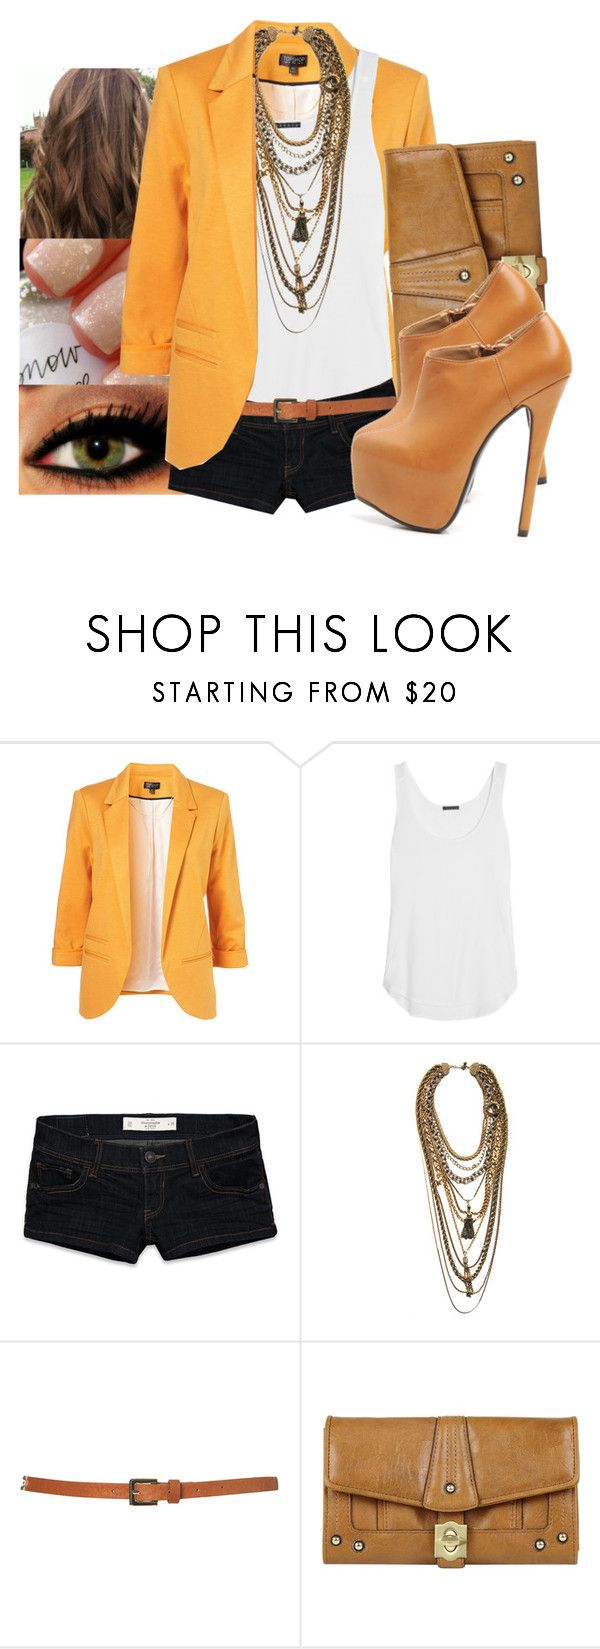 """""""..."""" by jamilah-rochon ❤ liked on Polyvore featuring Theory, Abercrombie & Fitch, Dirty Librarian Chains, Topshop, Mischa Barton Handbags and AX Paris"""